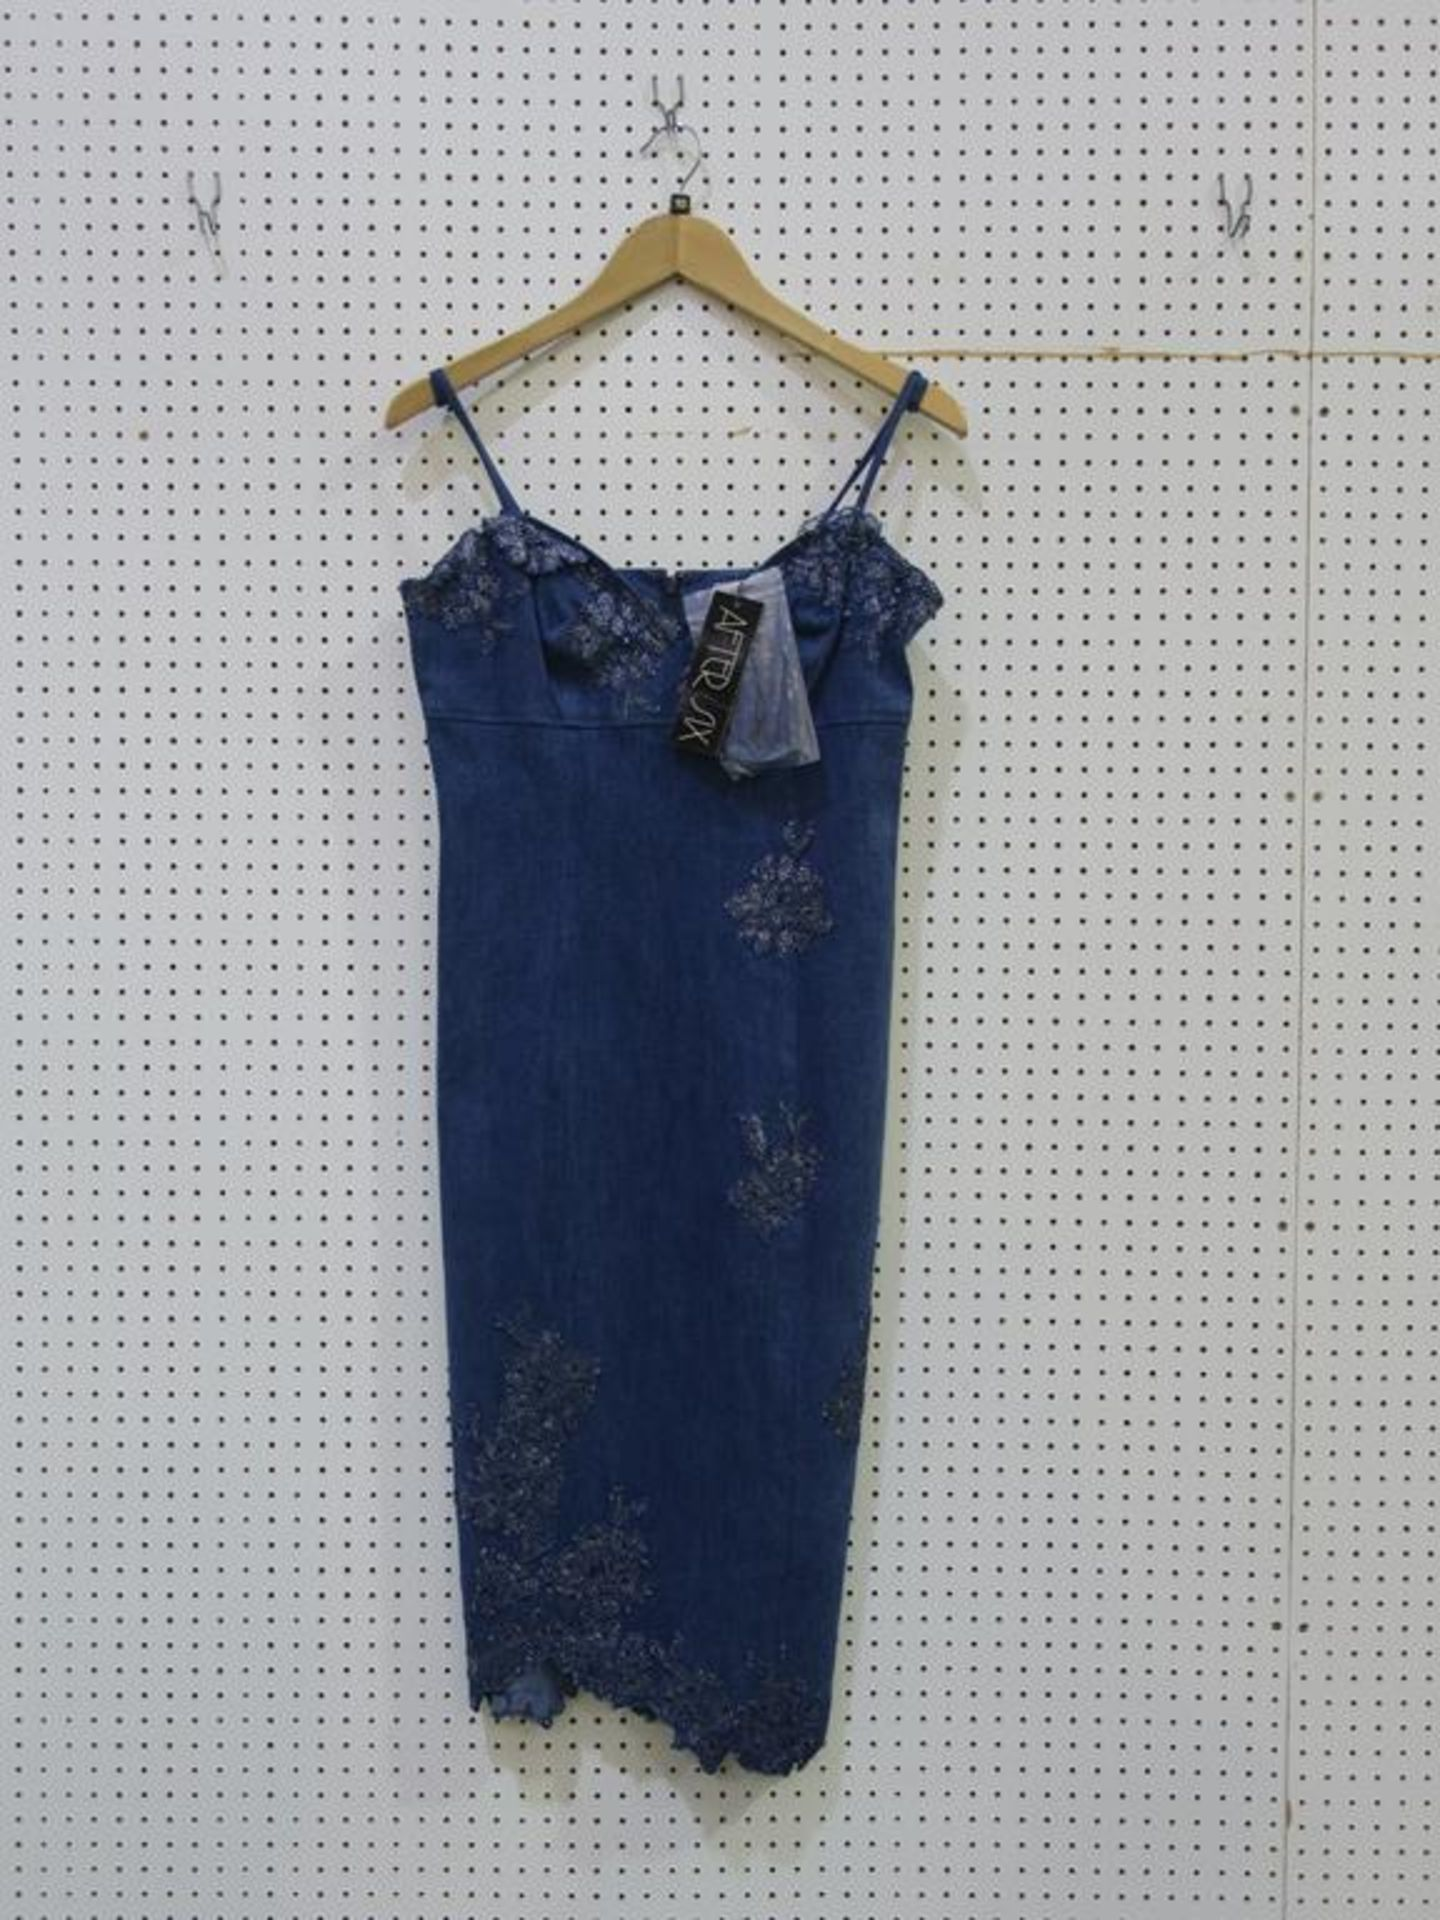 Lot 8047 - * Six Ladies Garments to include those by After Six, AS by Ronald Joyce, Marcelene in sizes